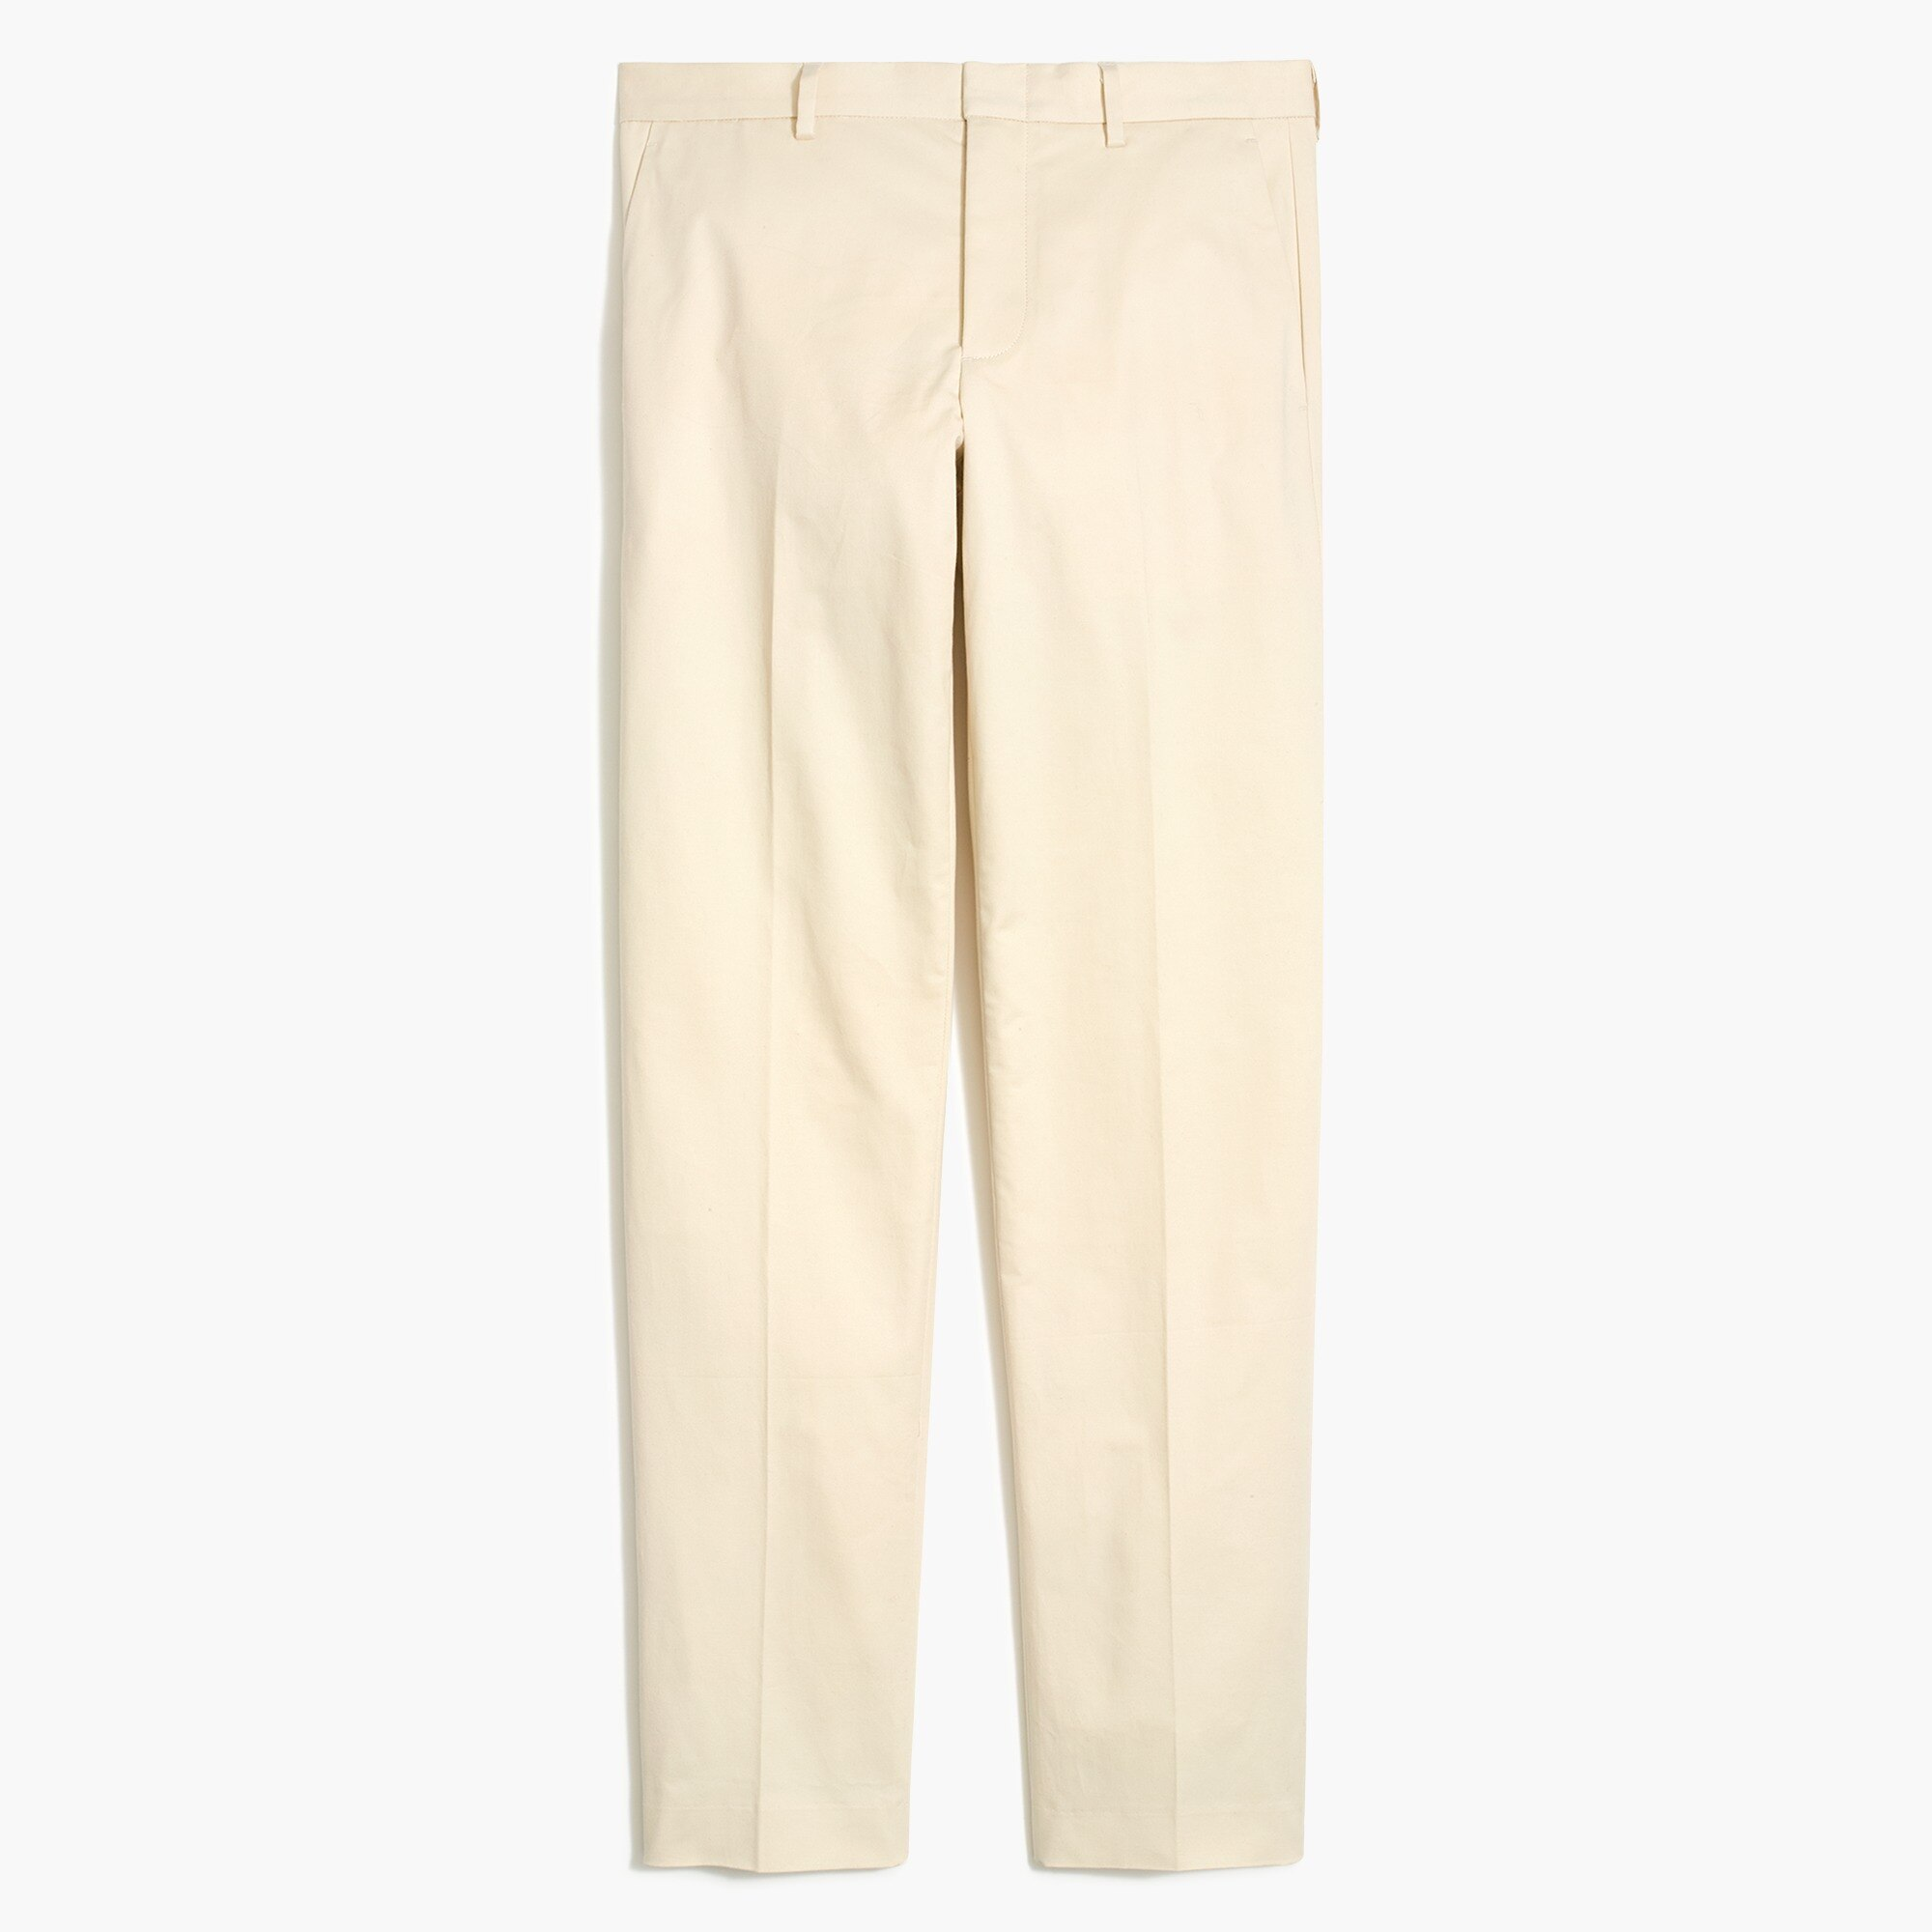 Image 4 for Slim-fit Thompson suit pant in flex chino